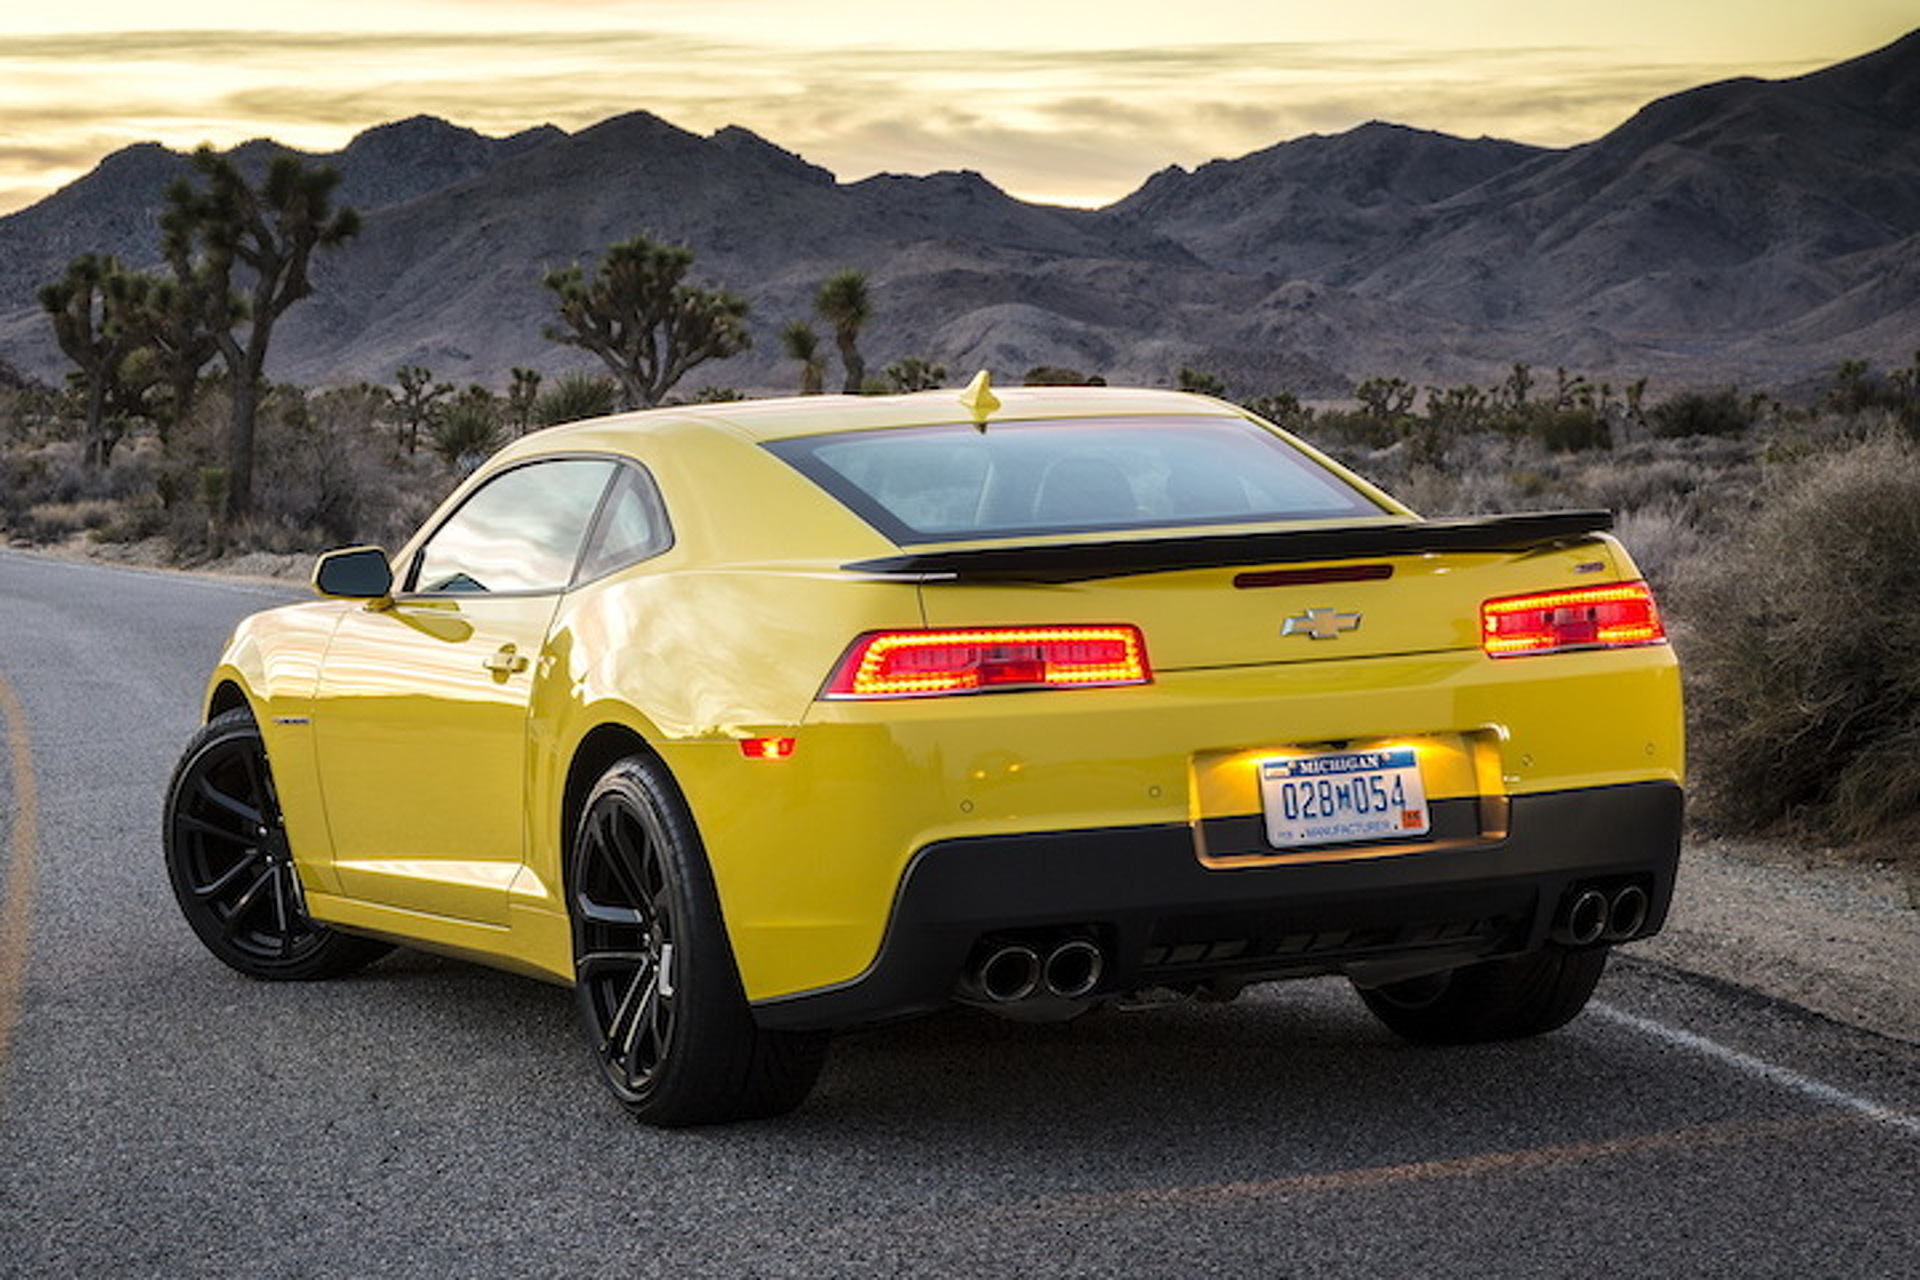 2016 Chevy Camaro Will Get a Turbo Four 70 s Looks